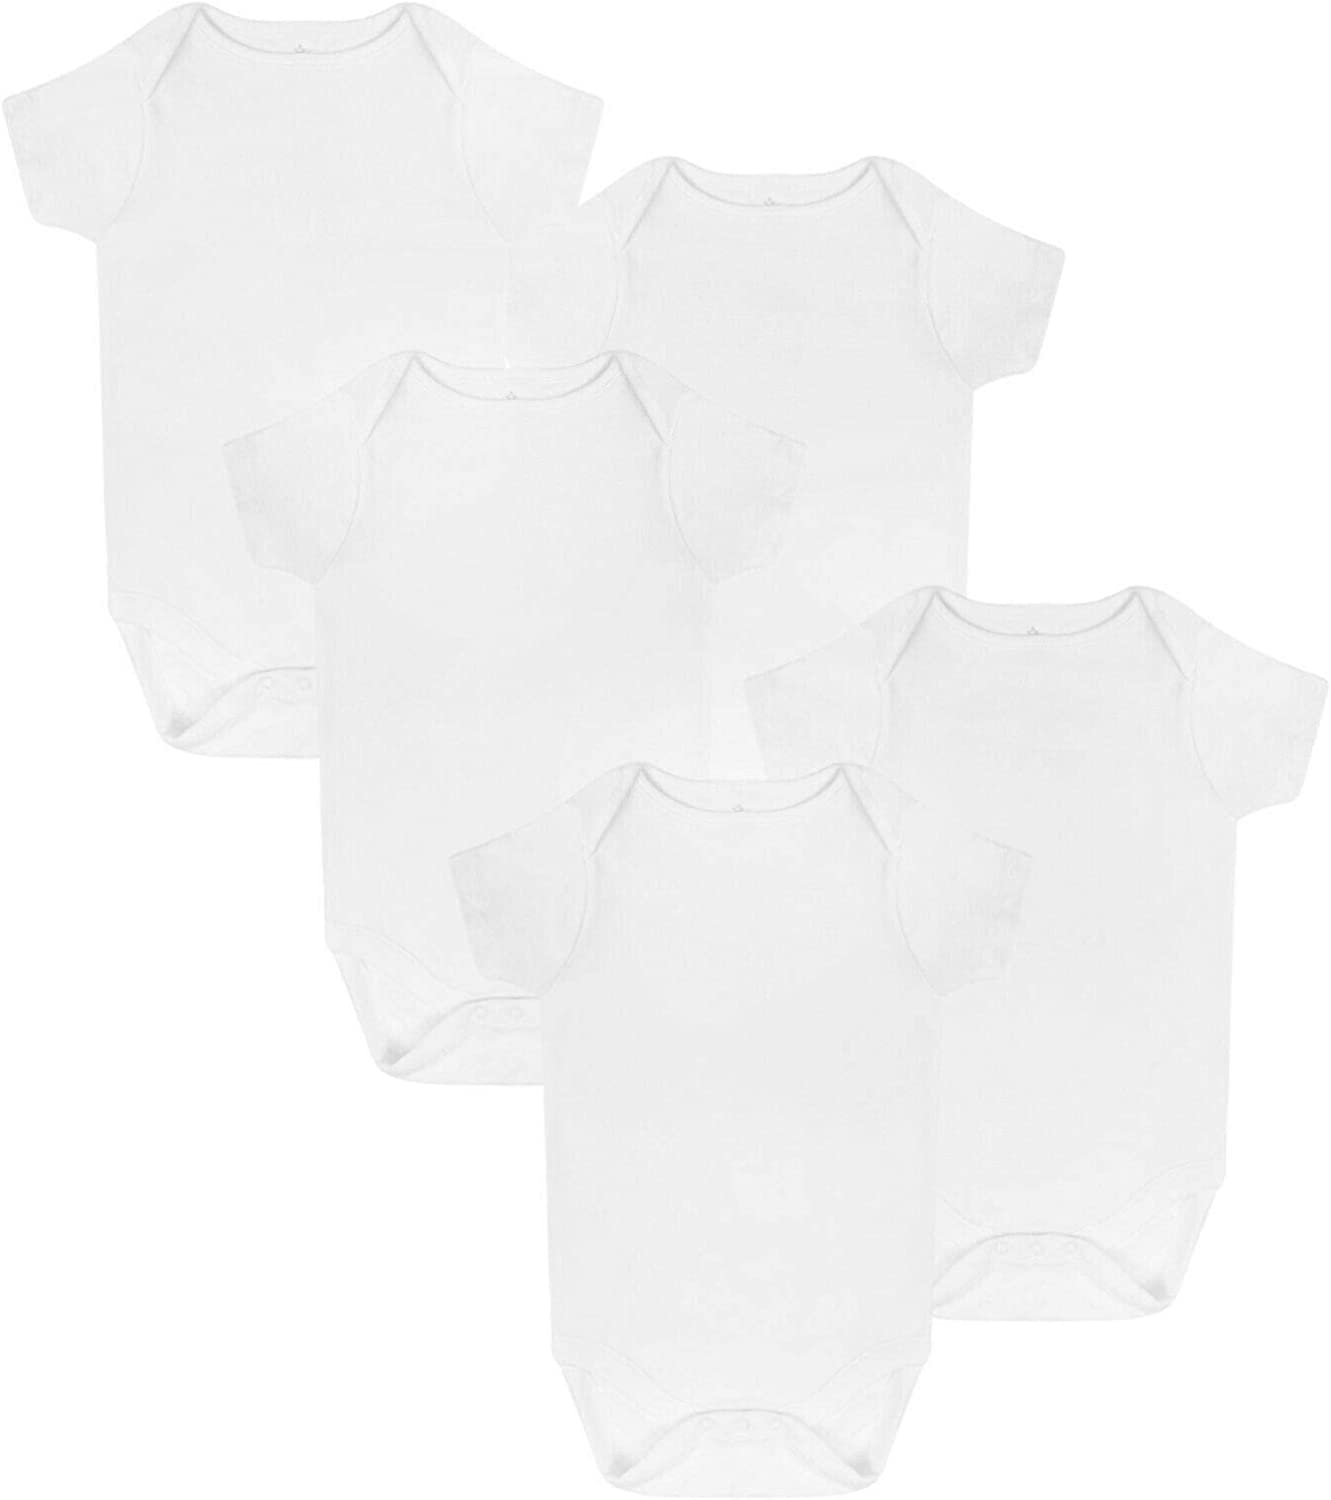 Baby Boys Girls 5 Pack Bodysuits EX M/&S Cotton 0-36M Short Sleeve Vests New